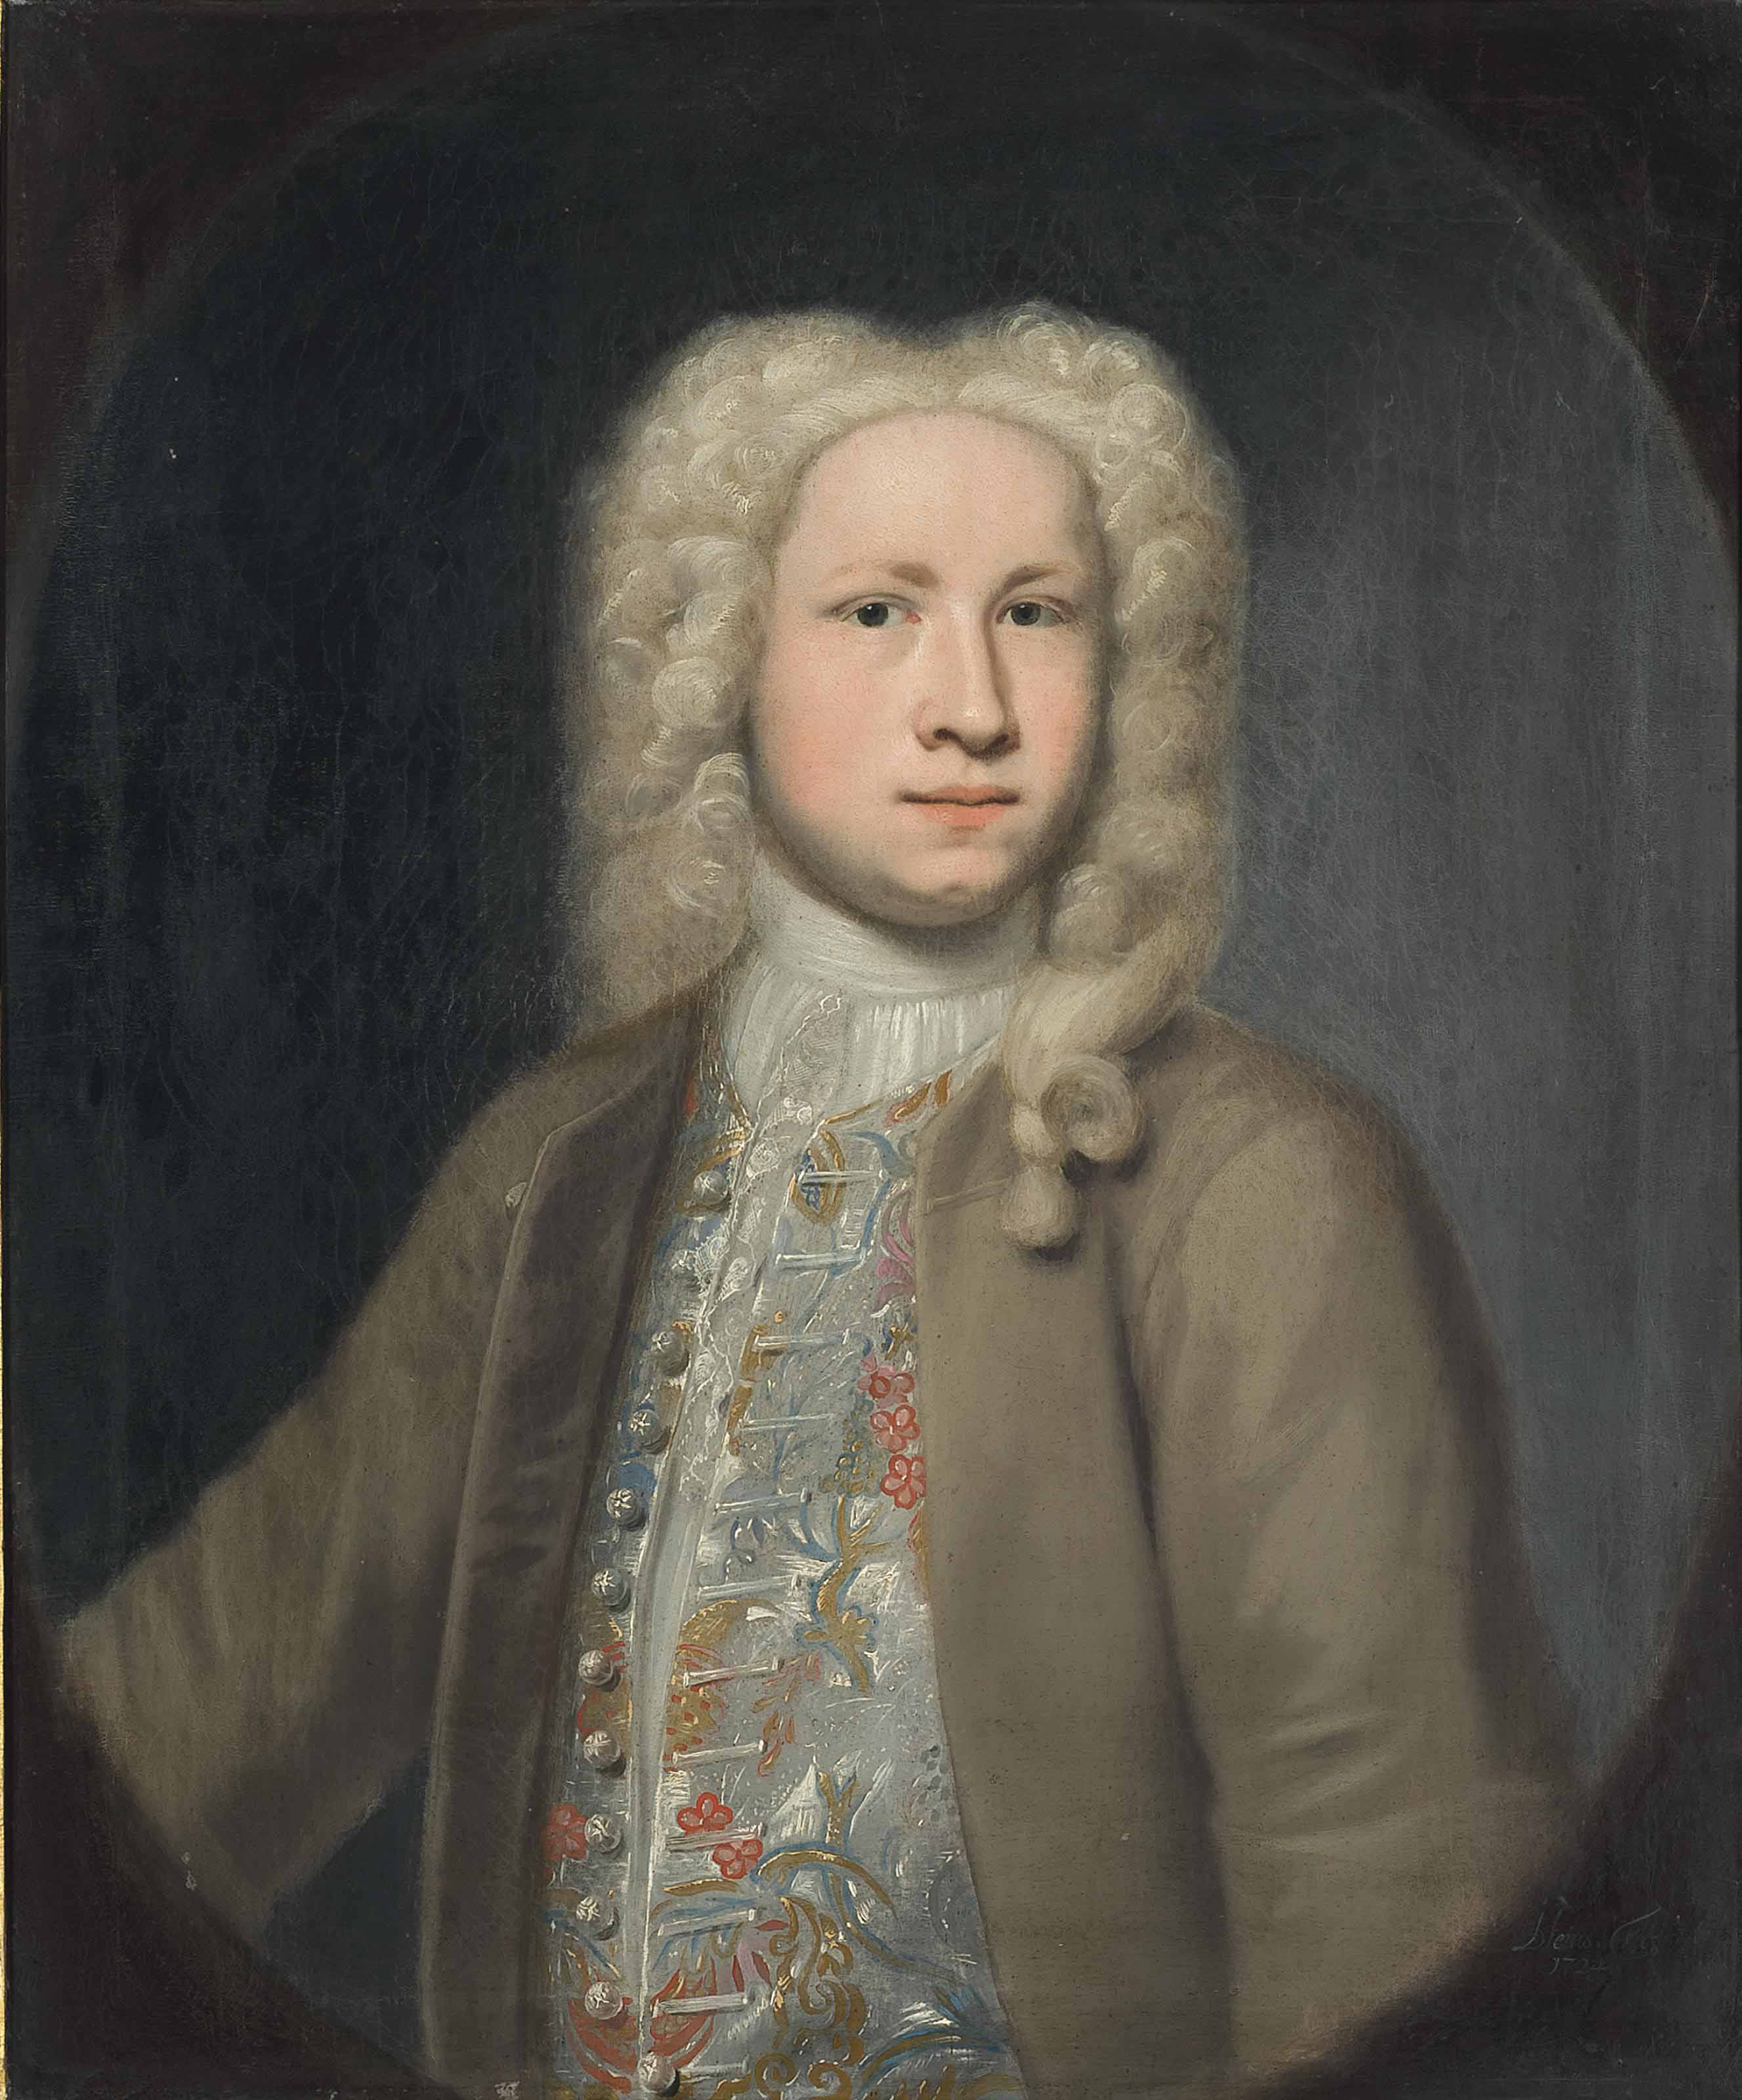 Portrait of John Davy, half-length, in a brown coat and embroidered waistcoat